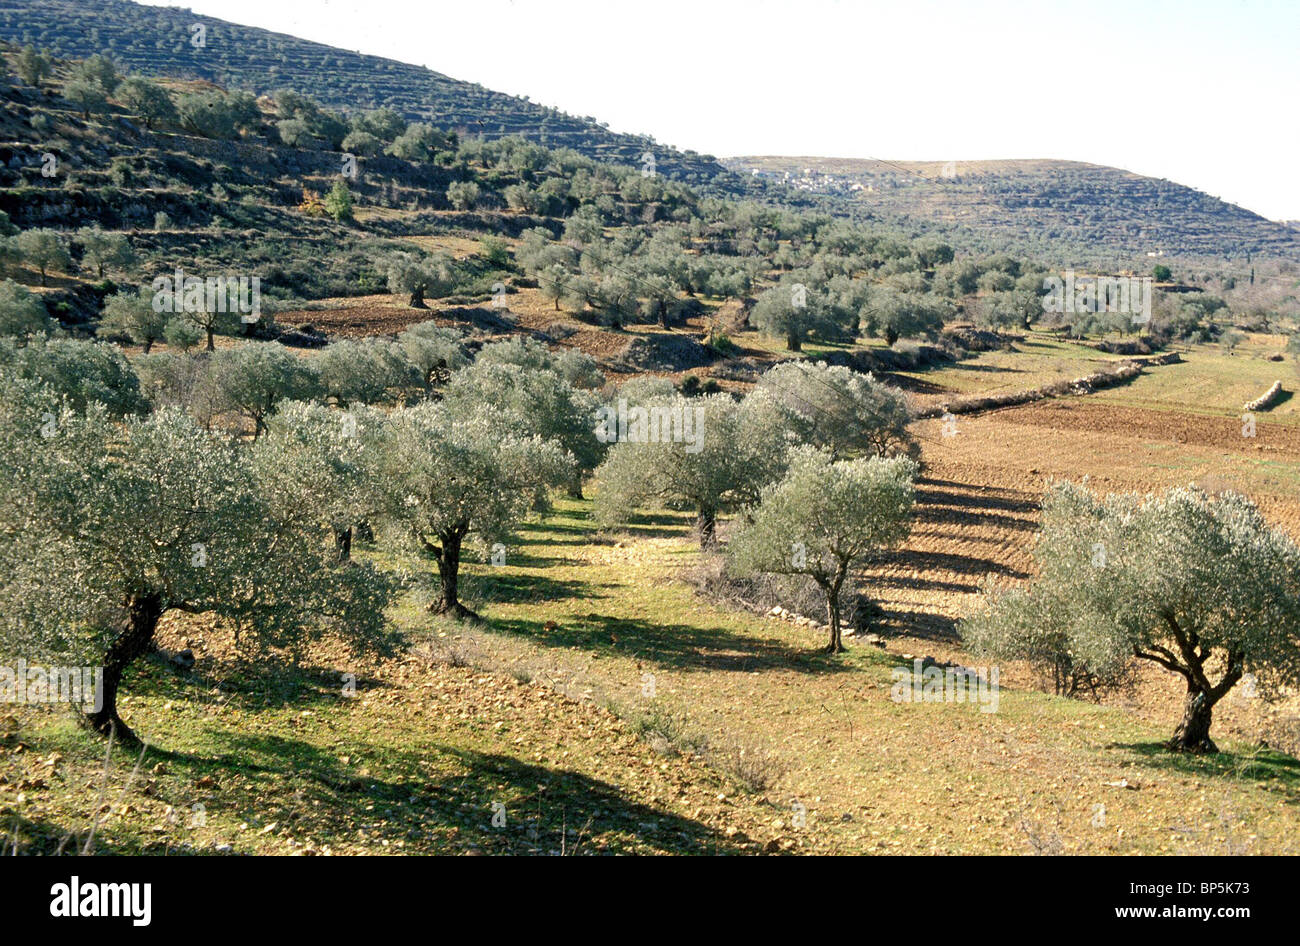 4702. GOPHNA -TOWN IN SAMARIA, NORTH OF JERUSALEM, EXISTING FROM THE HELENISTIC PERIOD ONWARDS. GREAT OLIVE GROWING - Stock Image